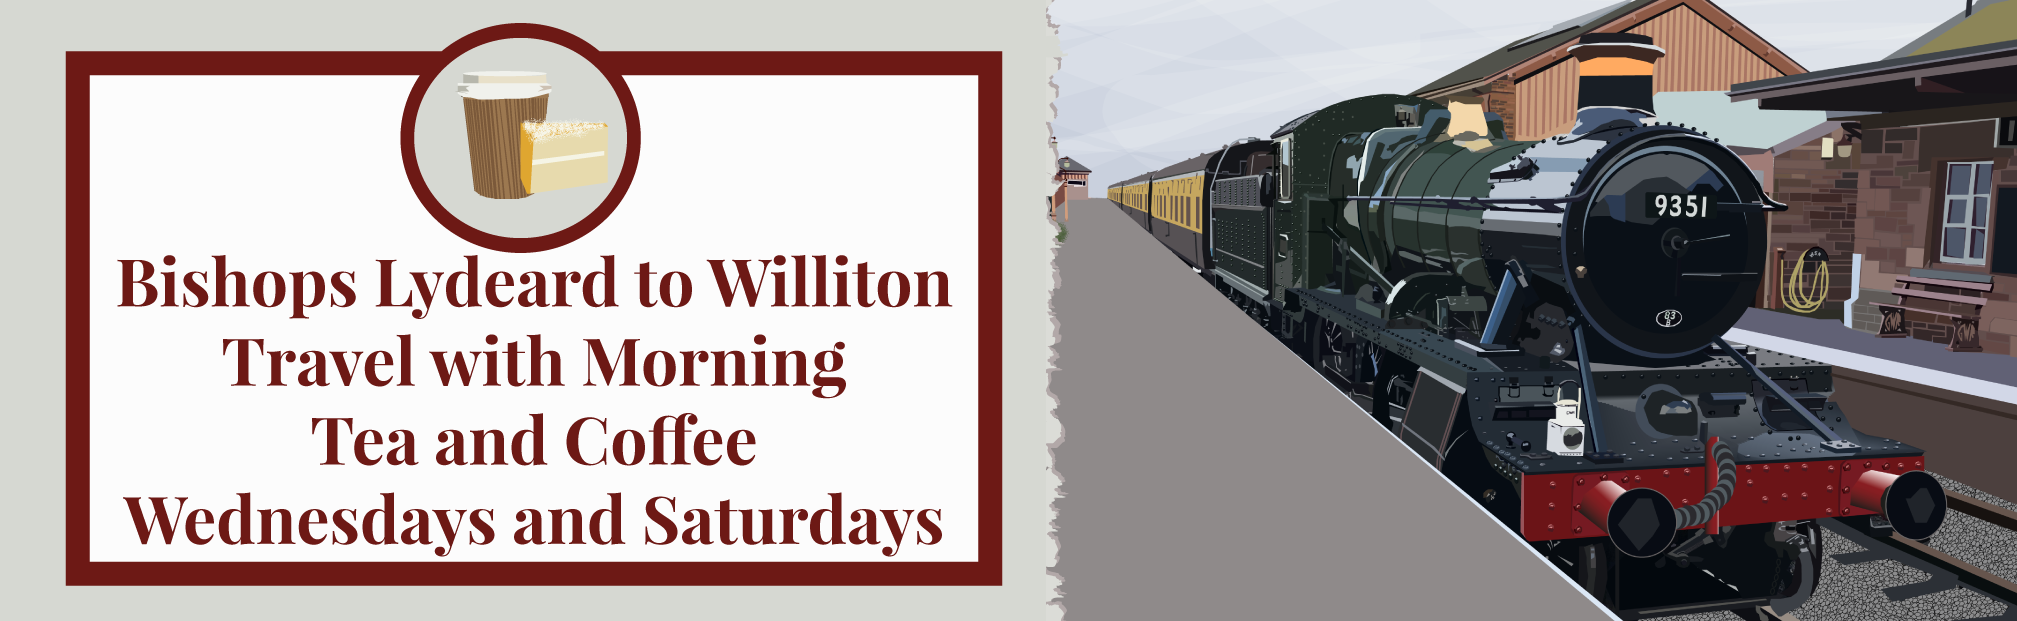 Bishops Lydeard to Williton Brown and Green Timetable Day - Wednesday & Saturday Tea Coffee and Cake 10am Service